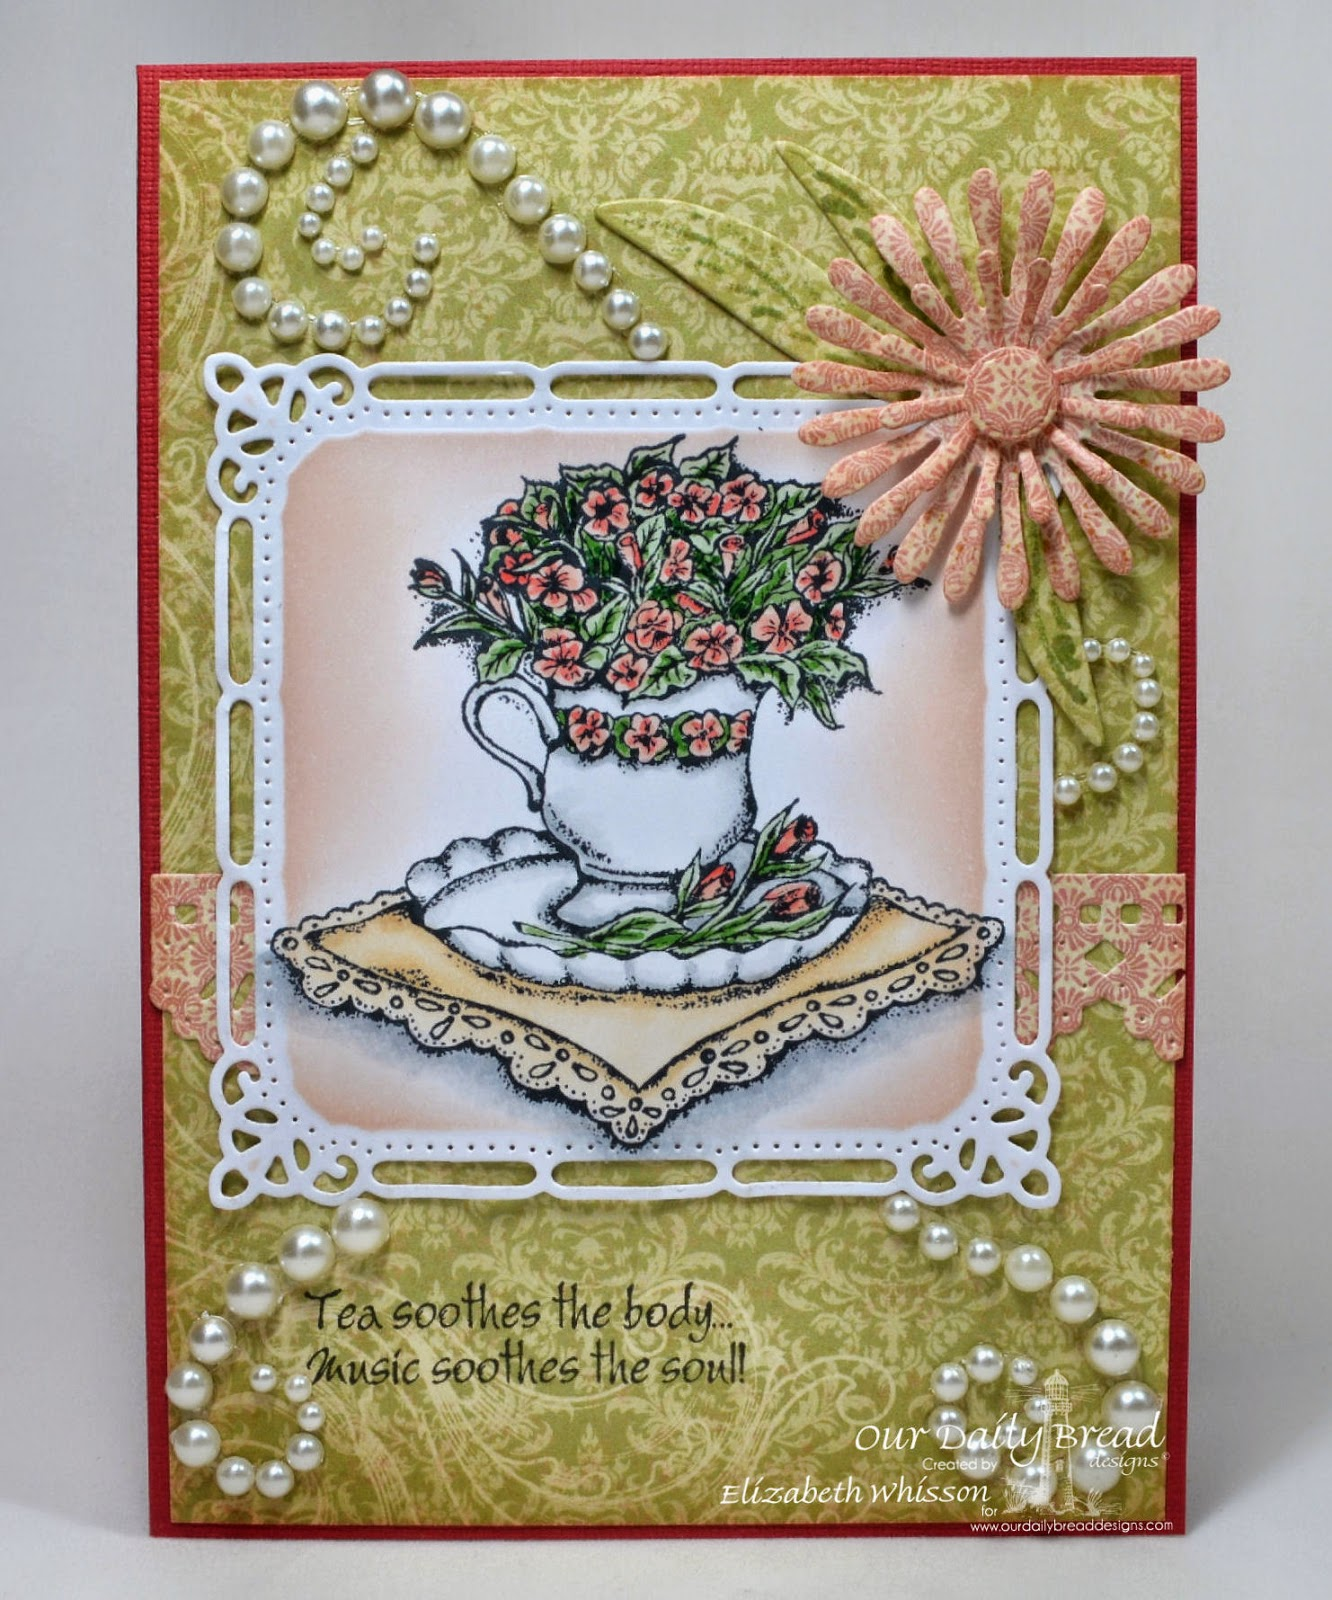 Elizabeth Whisson, Our Daily Bread Designs, Blushing Rose Paper Collection, ODBD Asters and Leaves Dies, ODBD Beautiful Borders Dies, Spellbinders dies, pearls, Birthday blessings, Just a Note, handmade card, Copics